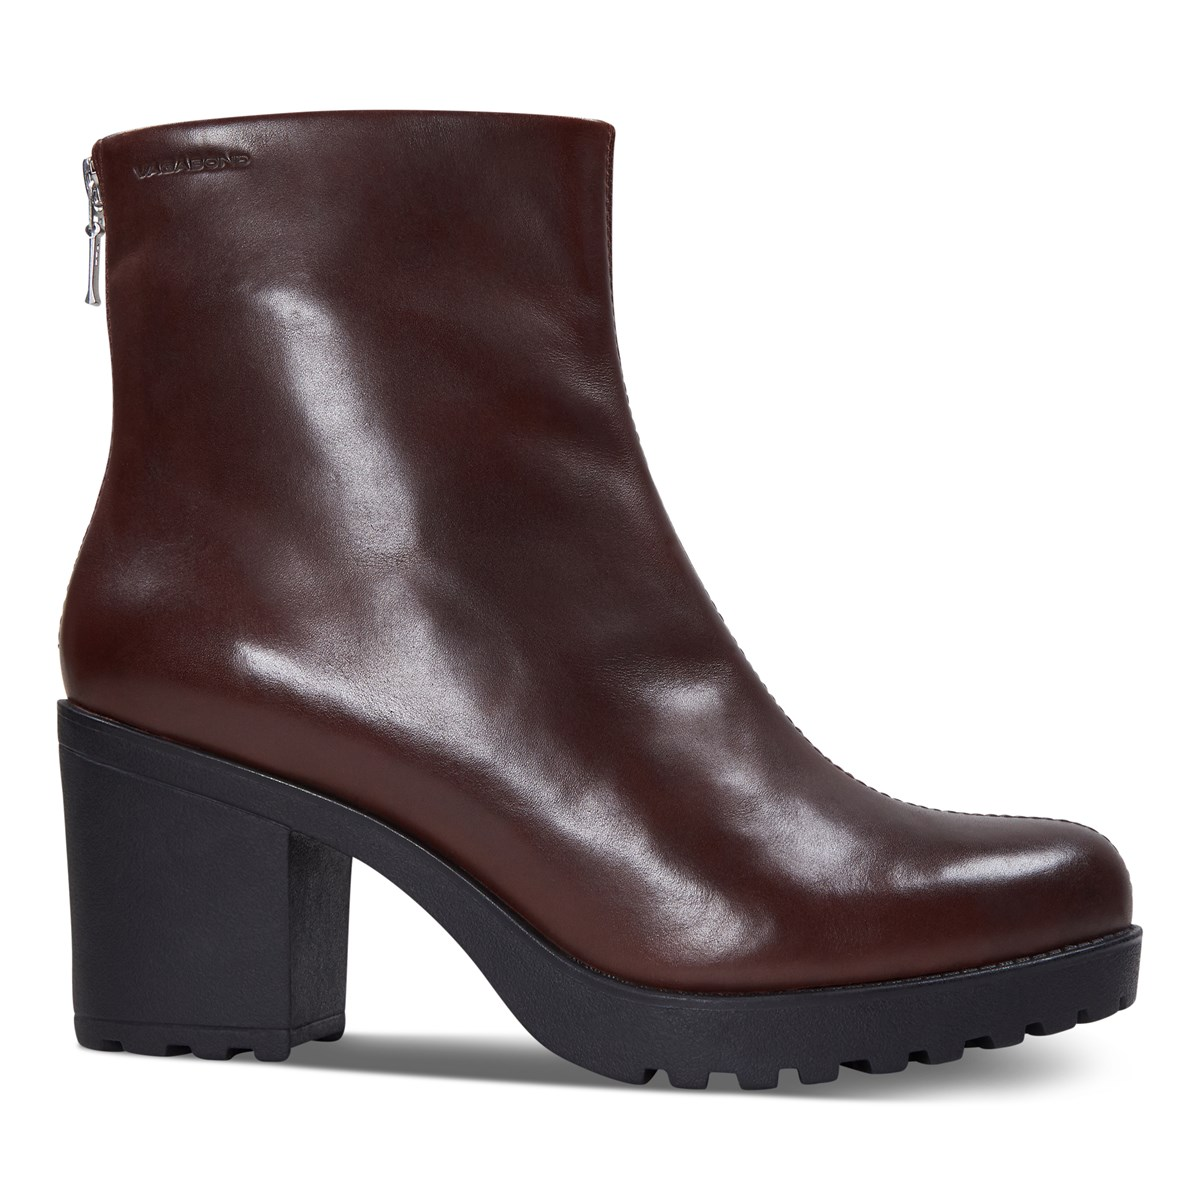 Women's Grace Heeled Boots in Bordeaux